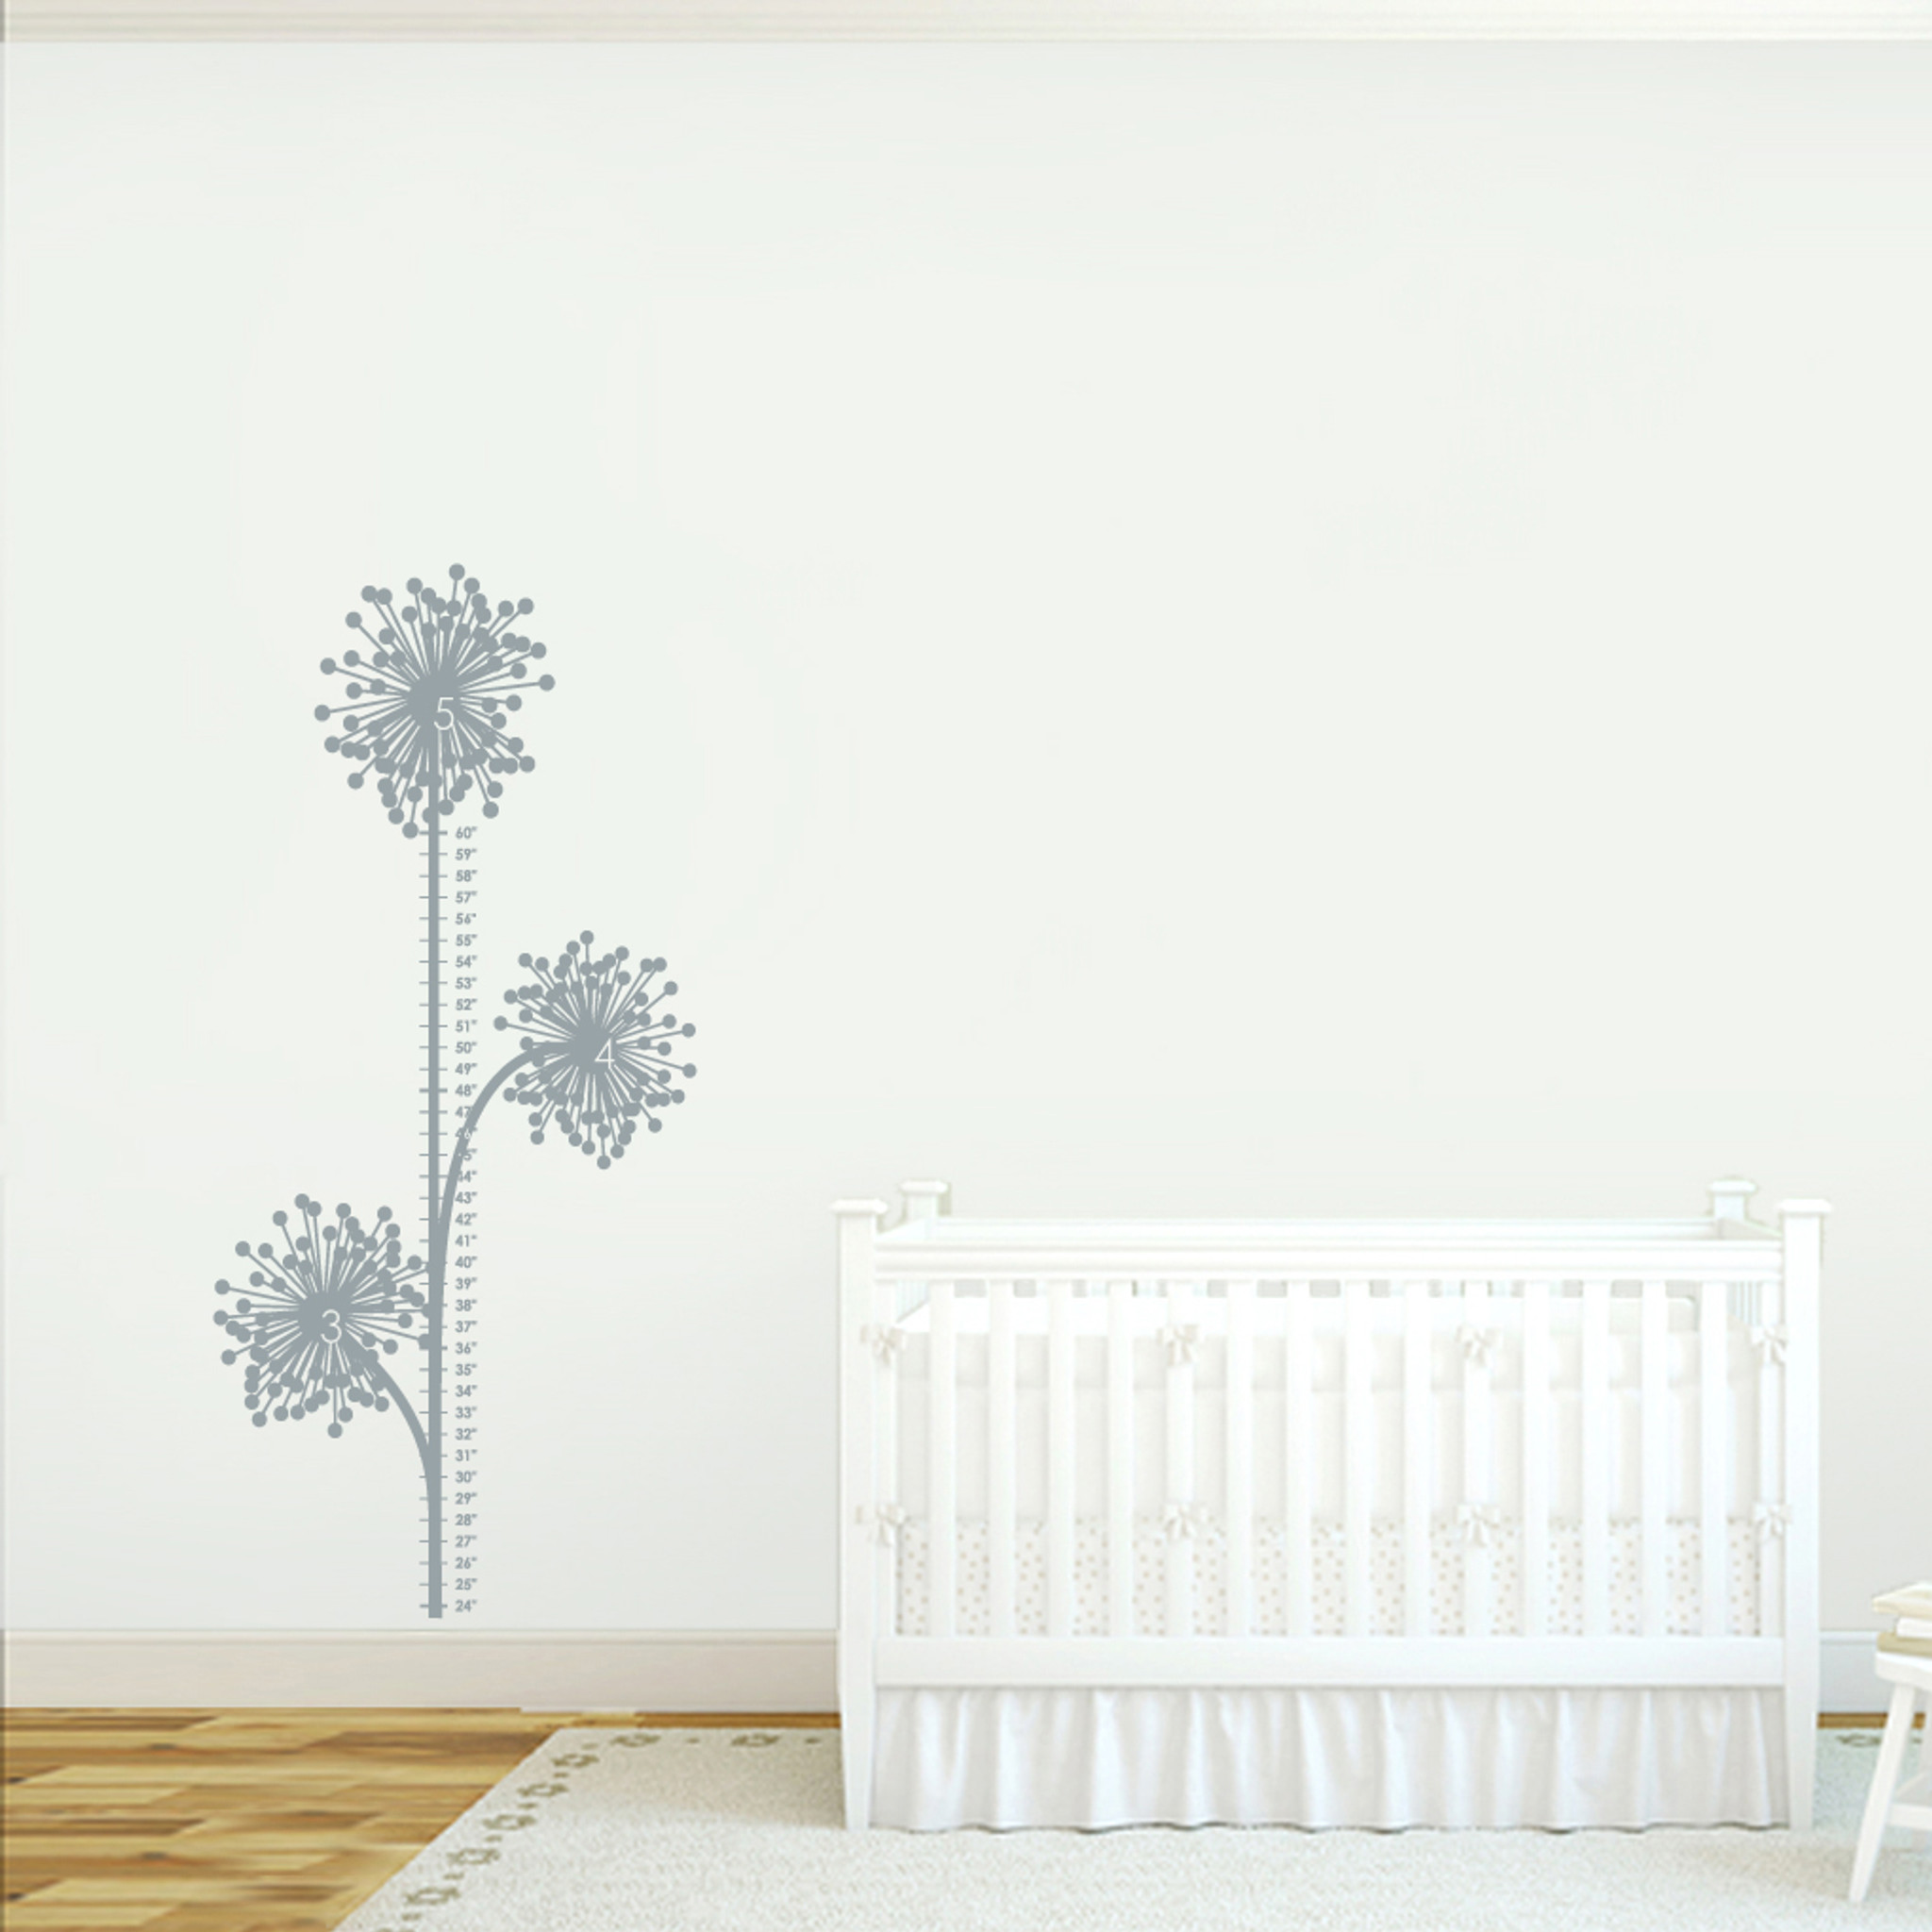 Dandelion Growth Chart Wall Decals Wall Decor Stickers